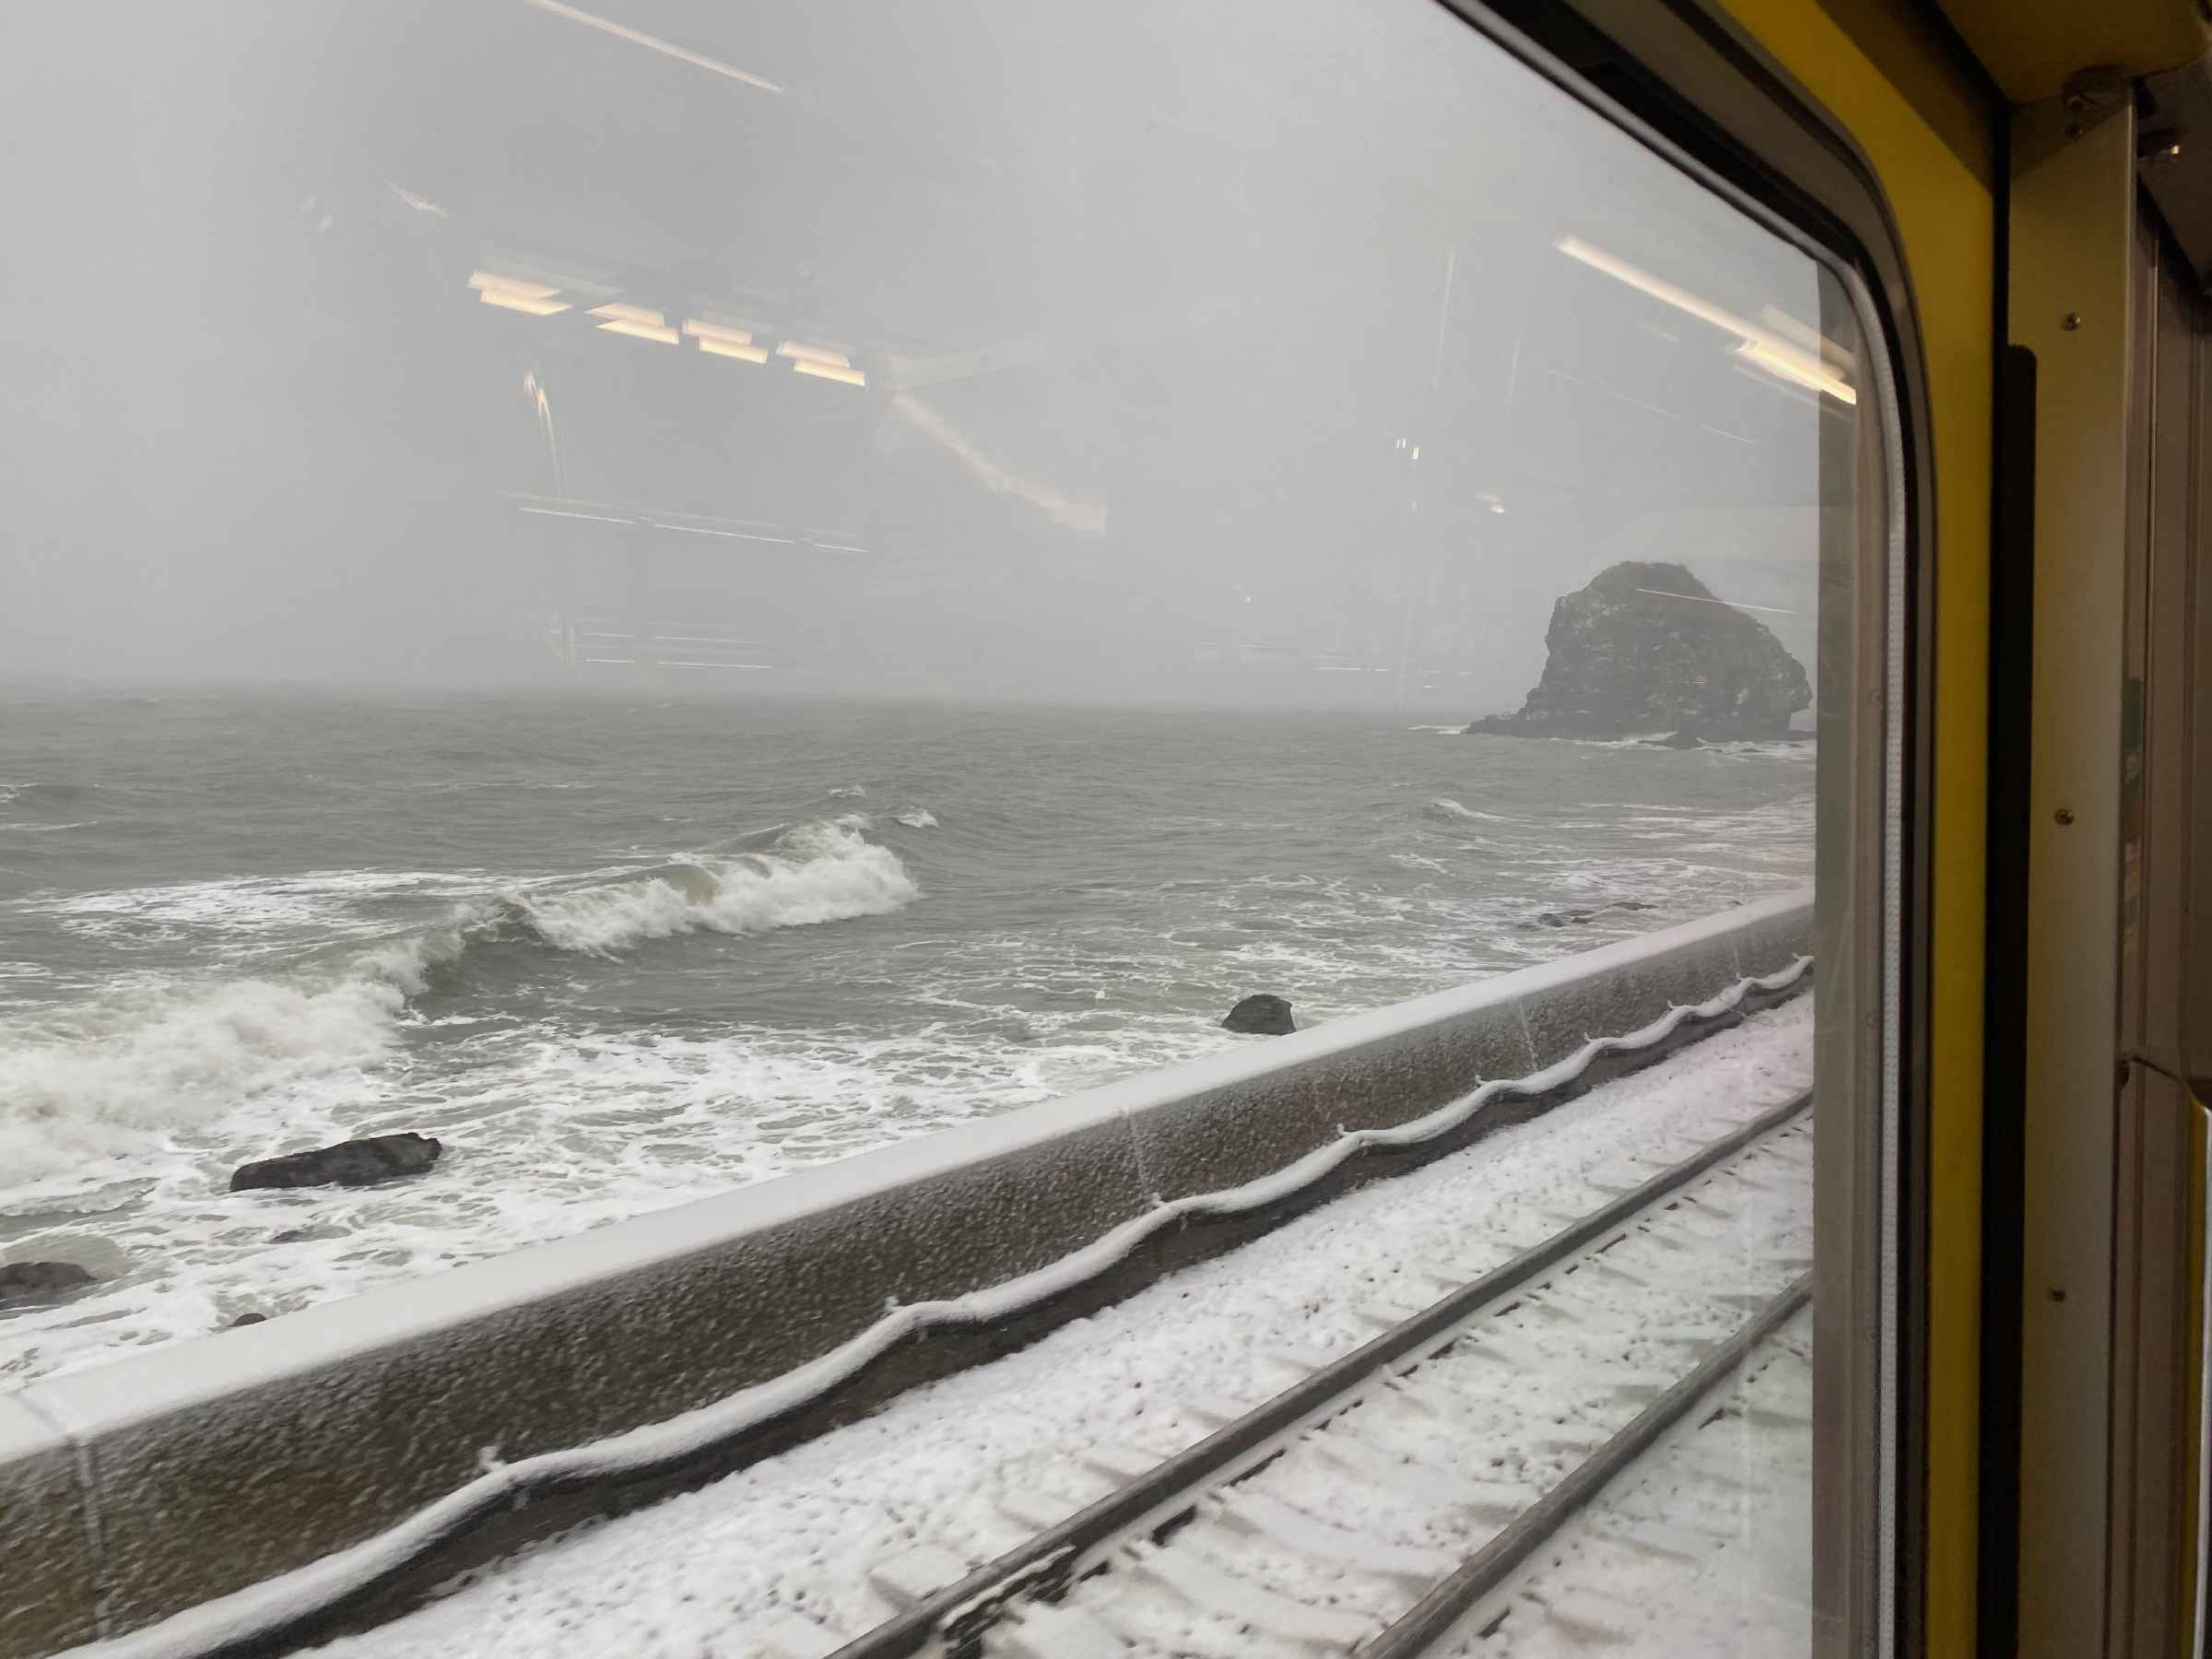 Photo of snow by the sea waves from a train